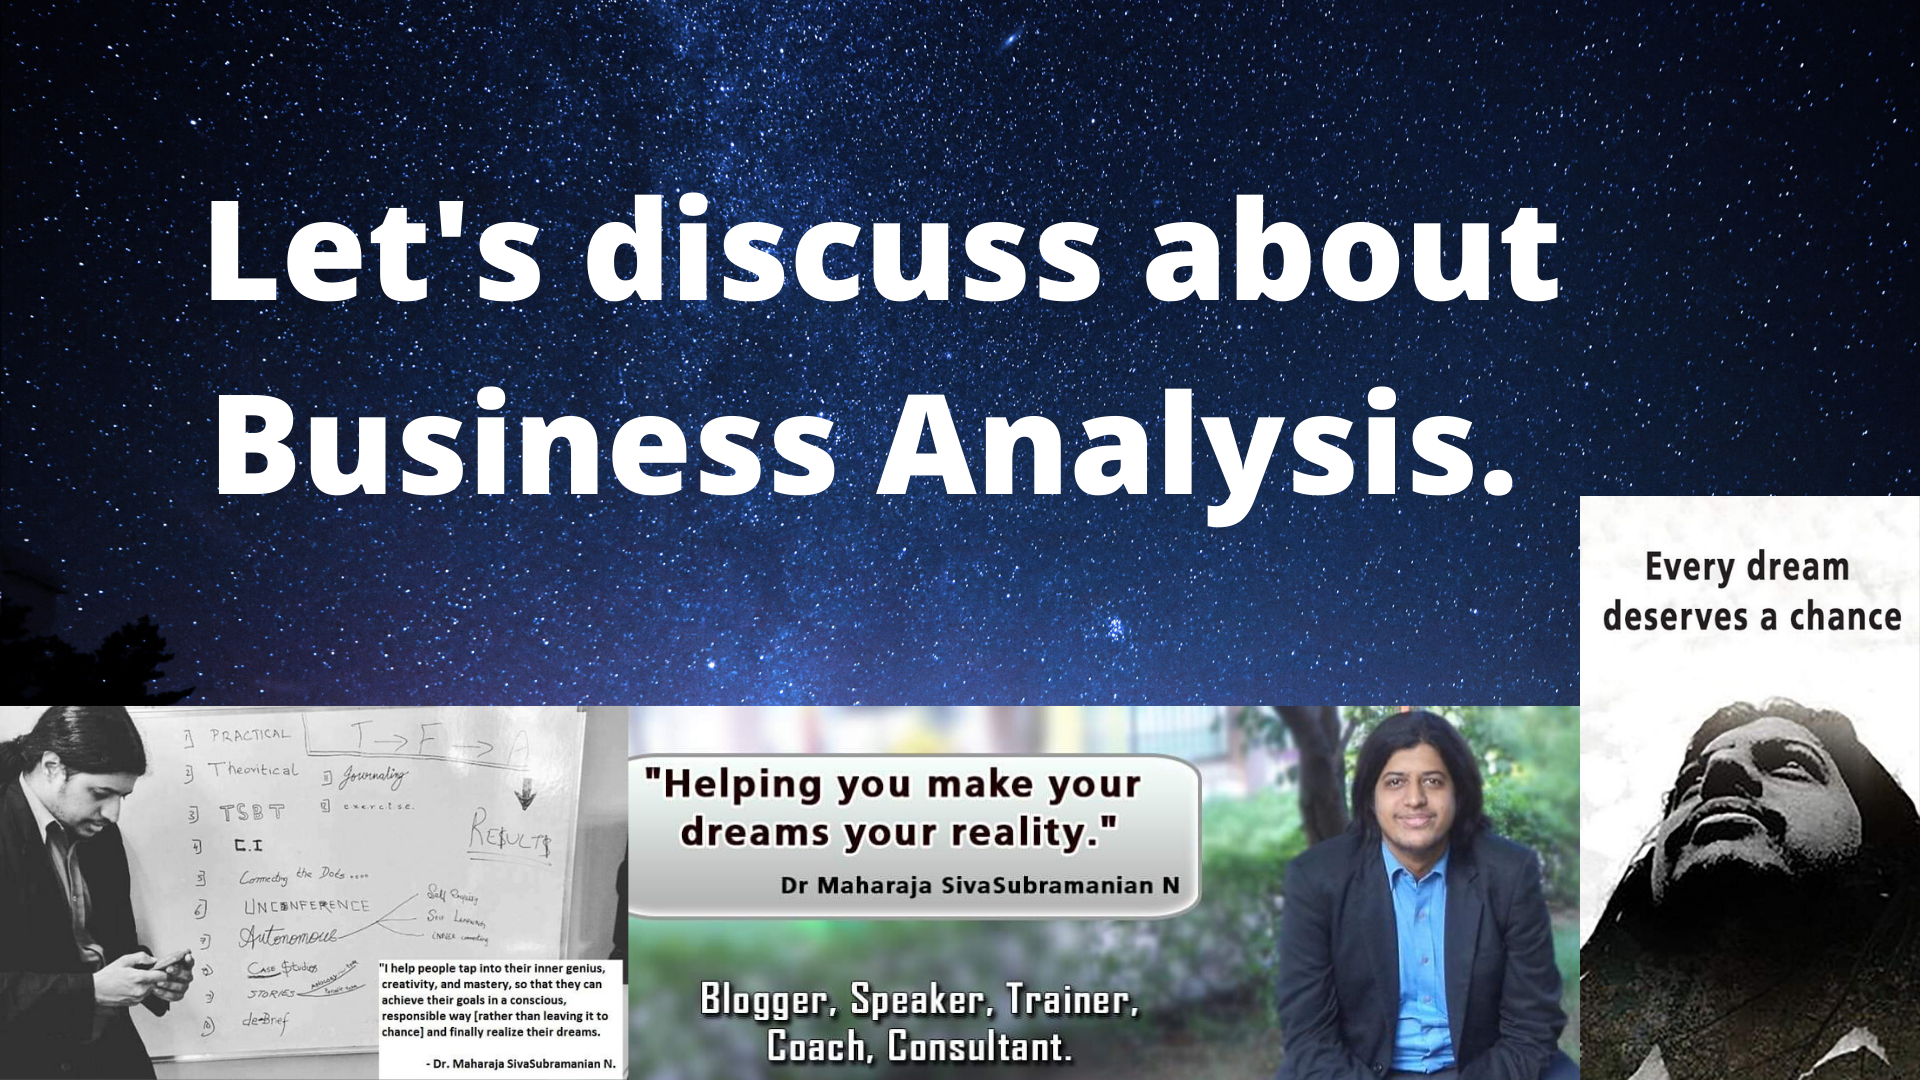 Let's discuss about Business Analysis.